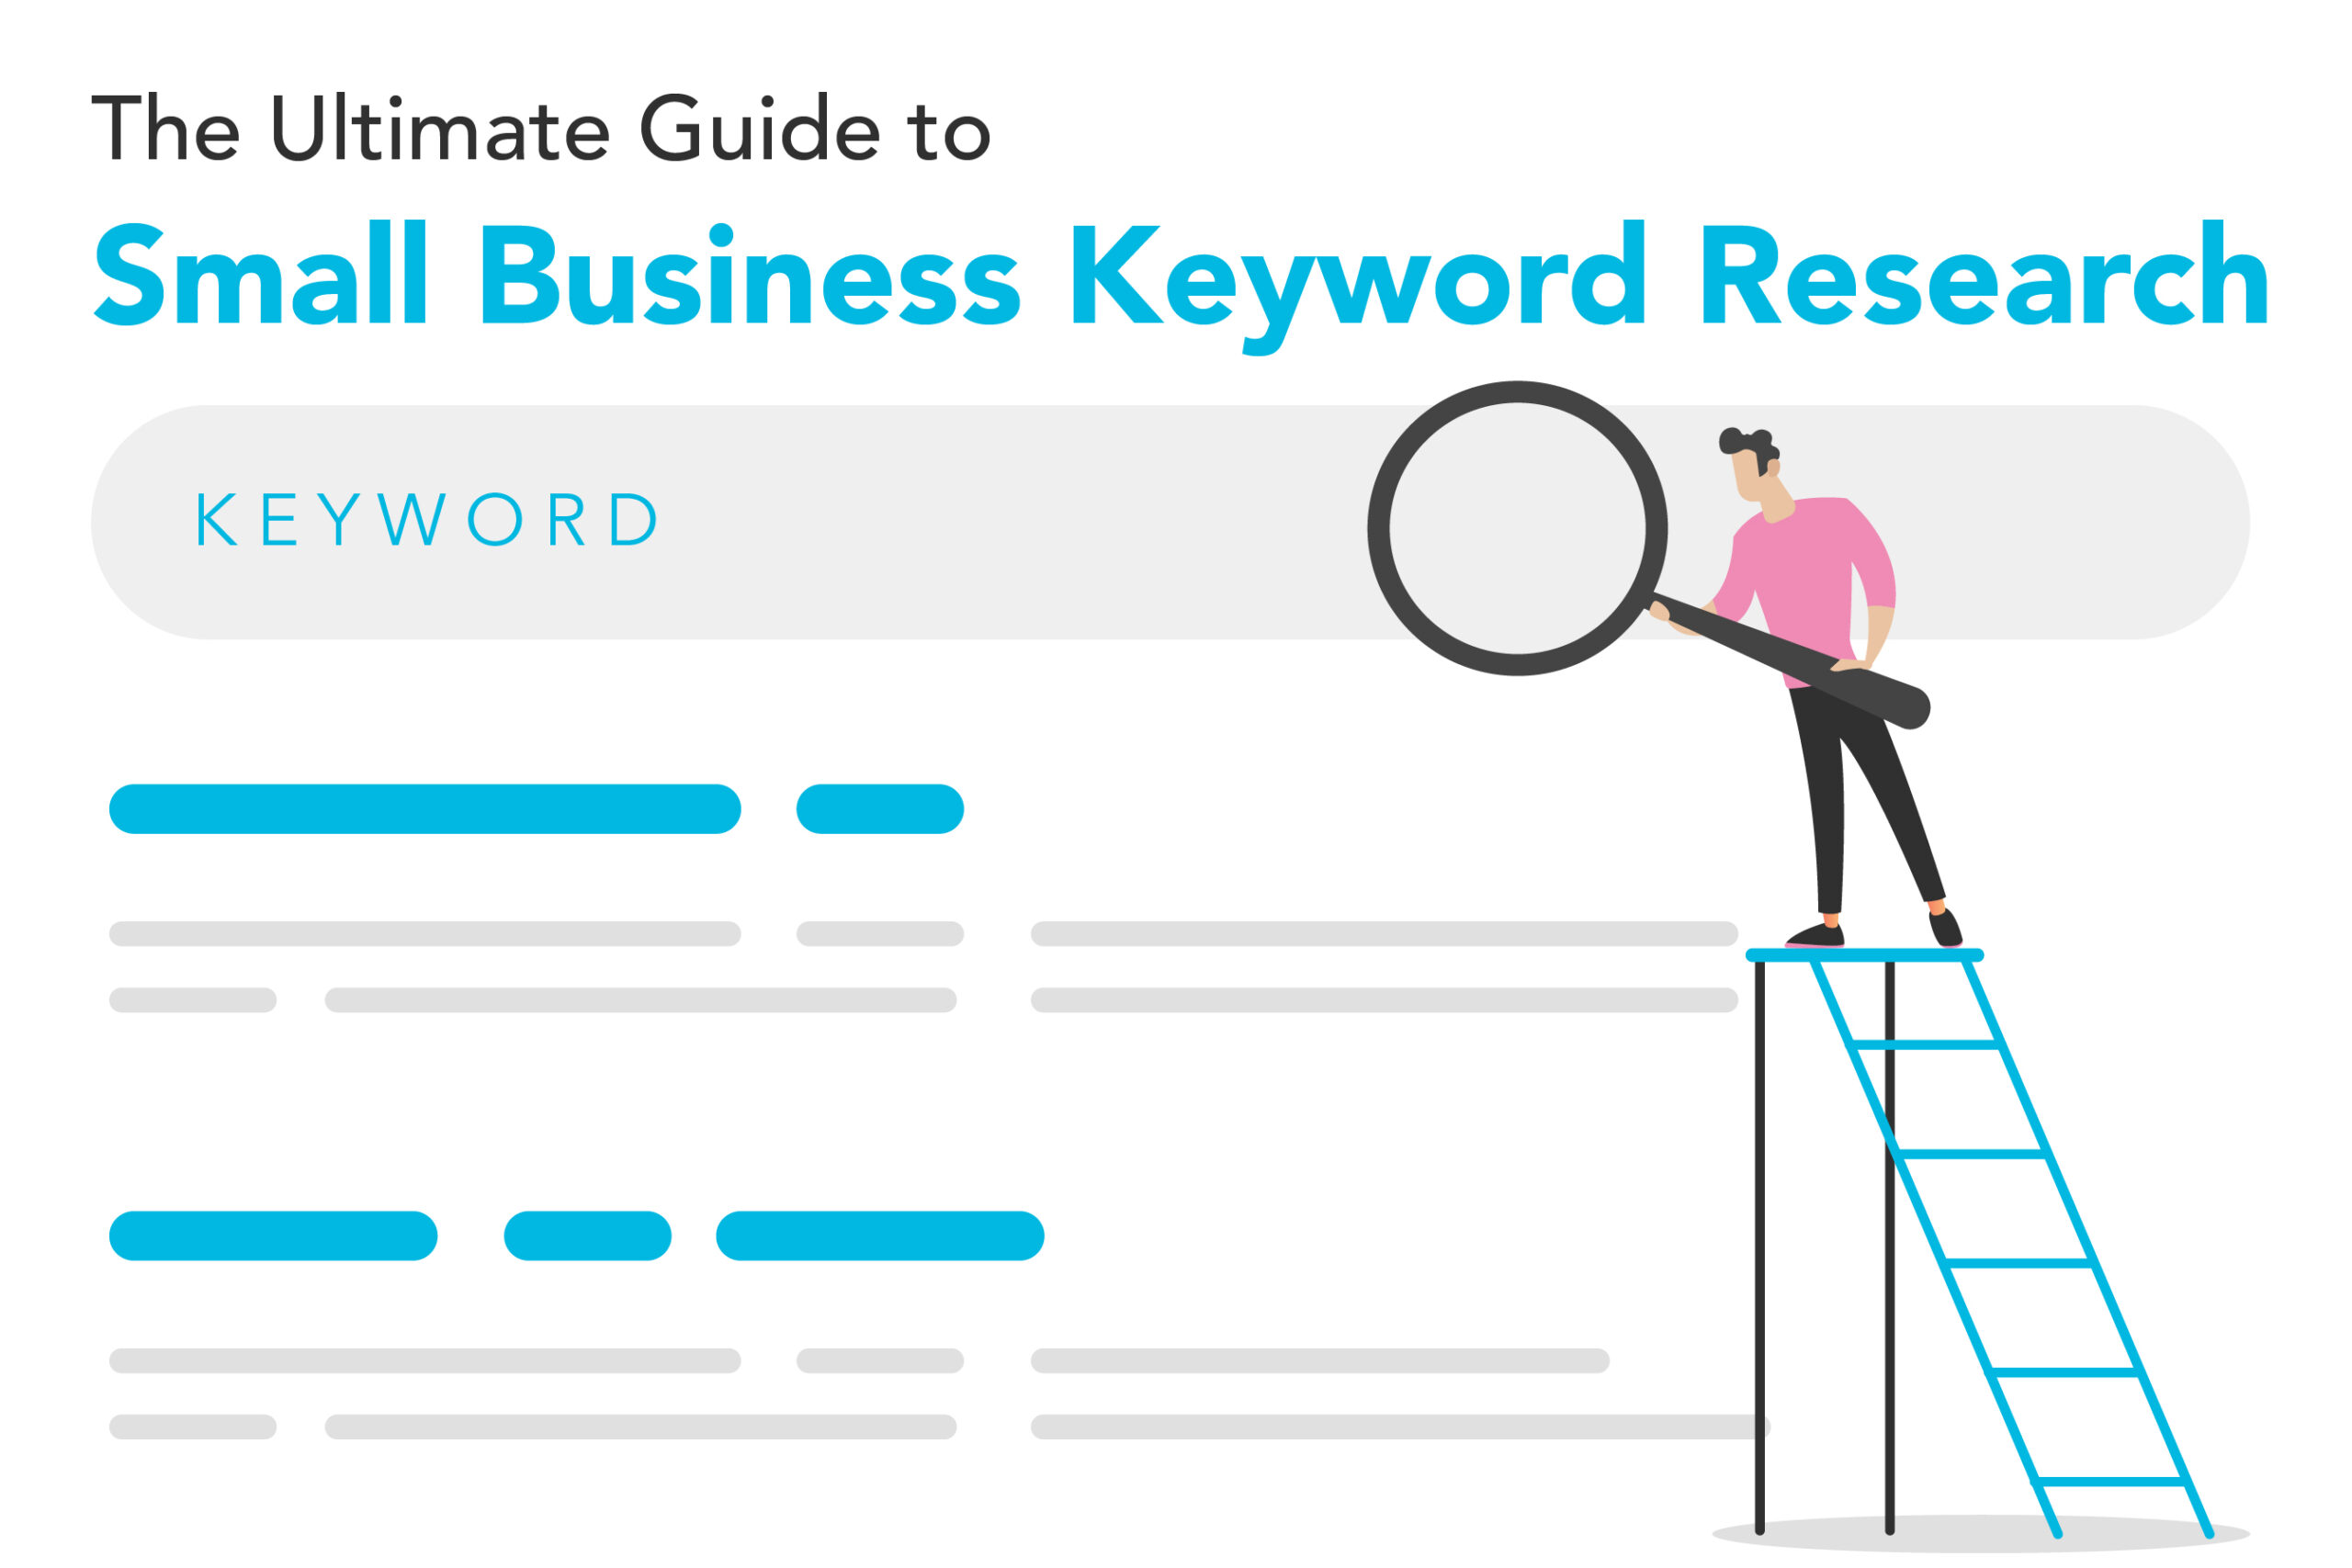 GUIDE TO SMALL BUSINESS KEYWORD RESEARCH